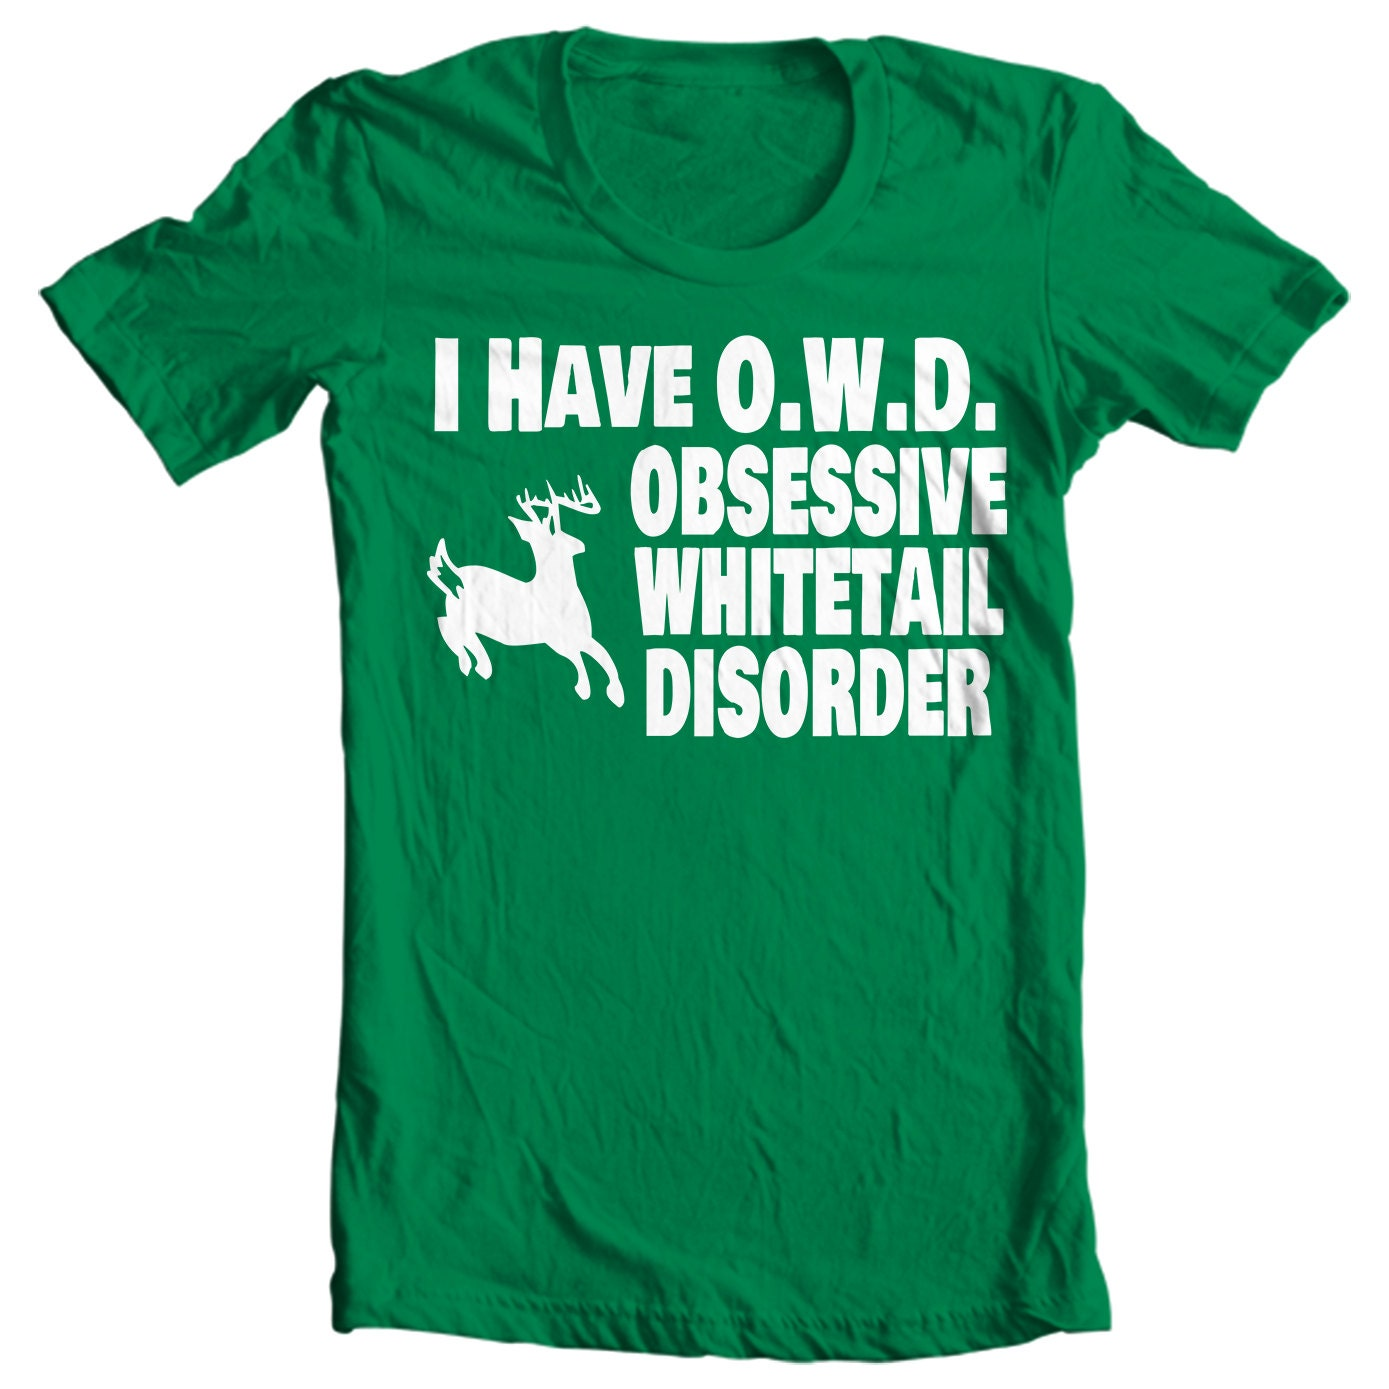 I Have OWD - Obsessive Whitetail Disorder - Deer Hunting T-shirt